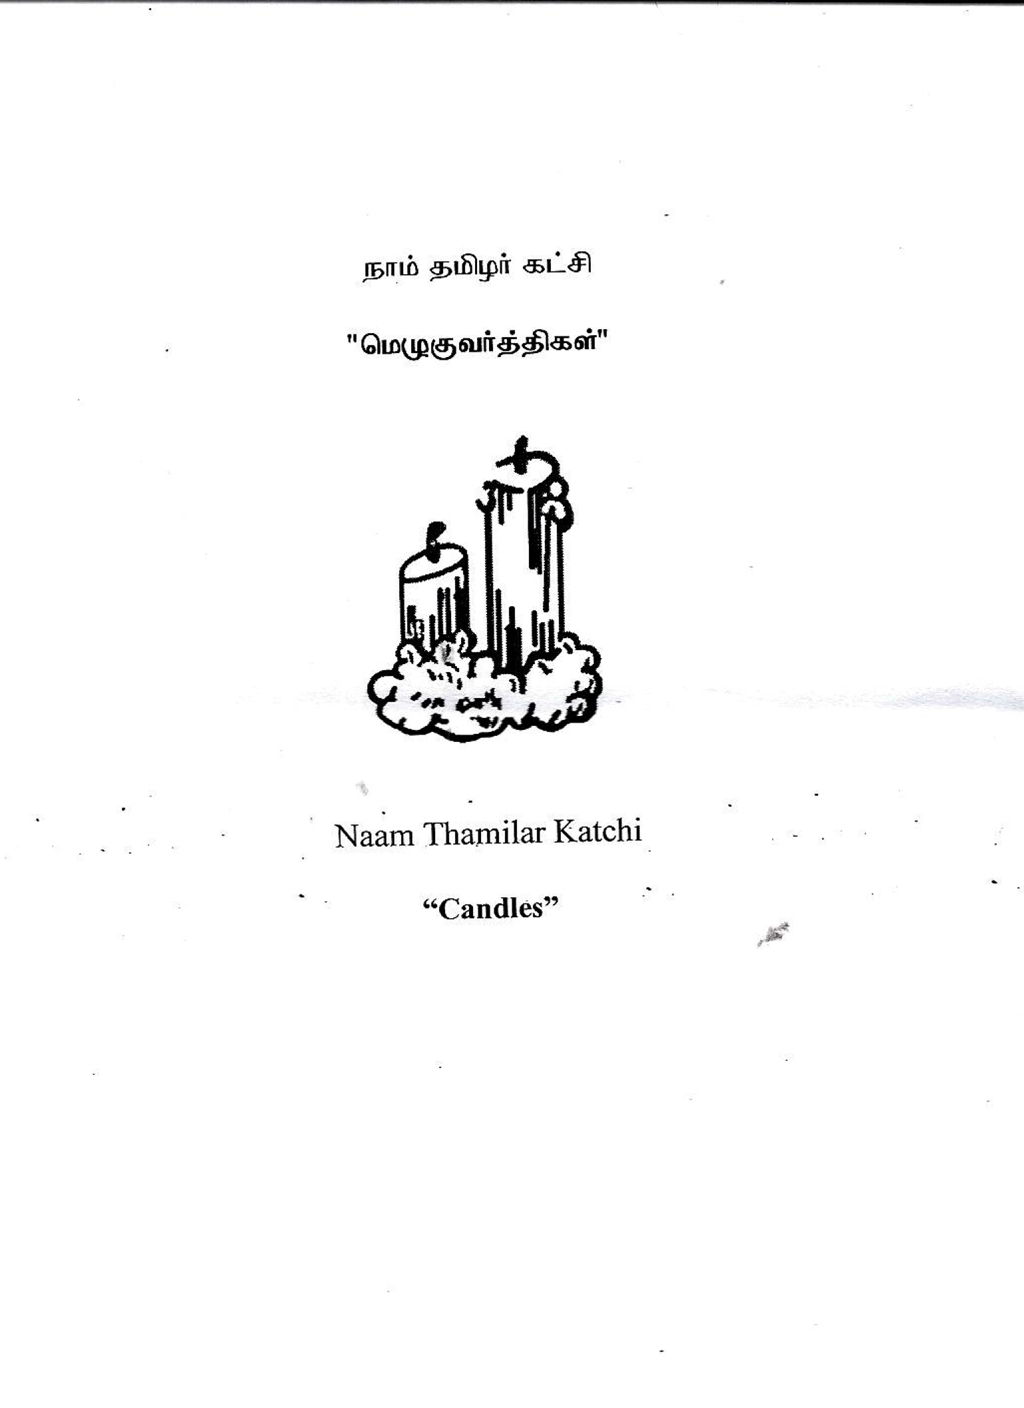 naam-tamilar-election-symbol-candles-tn-election-commission-confirm-letter.jpg